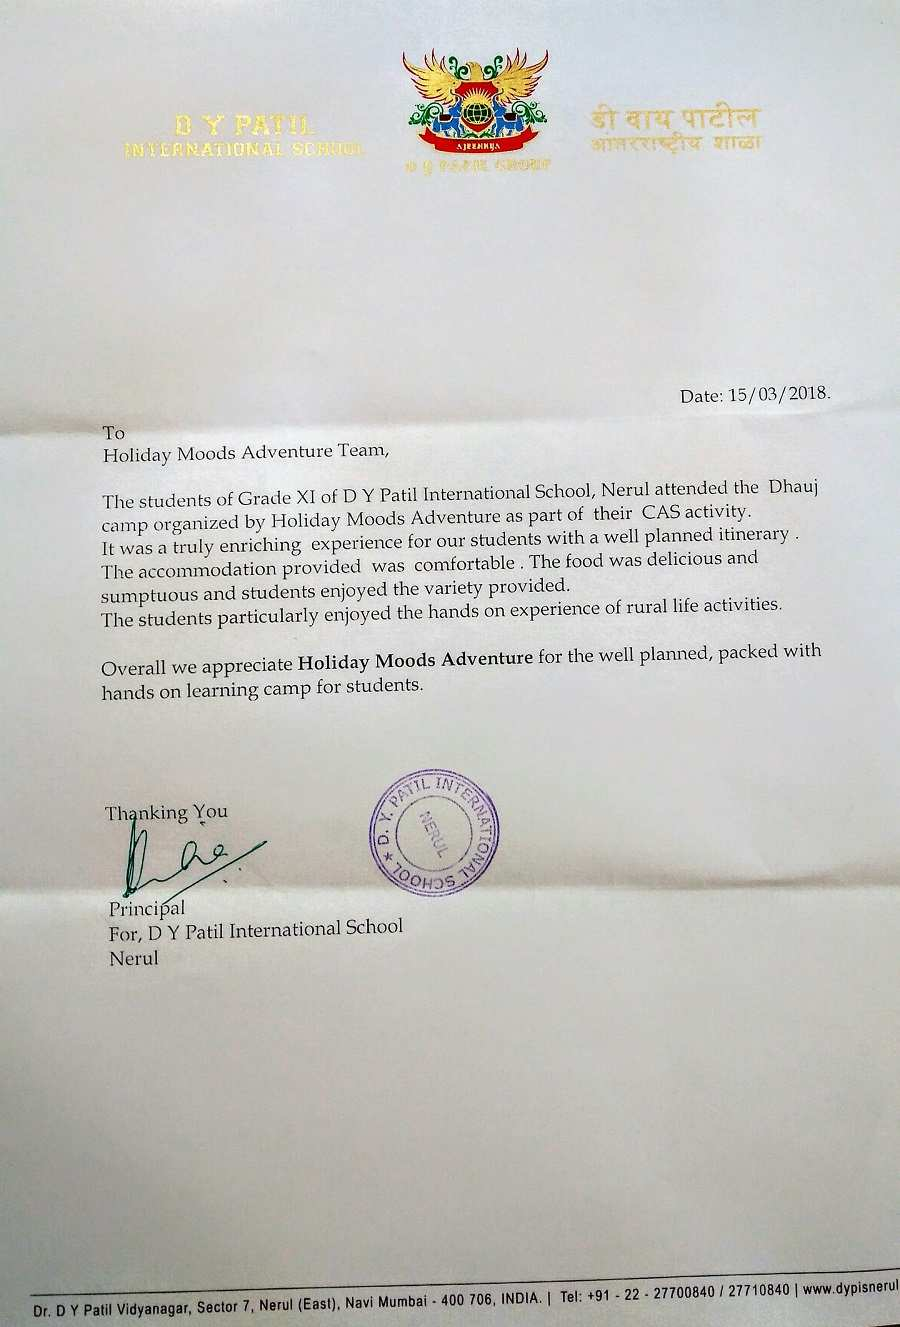 DY Patil Int'l school appreciation letter 2018